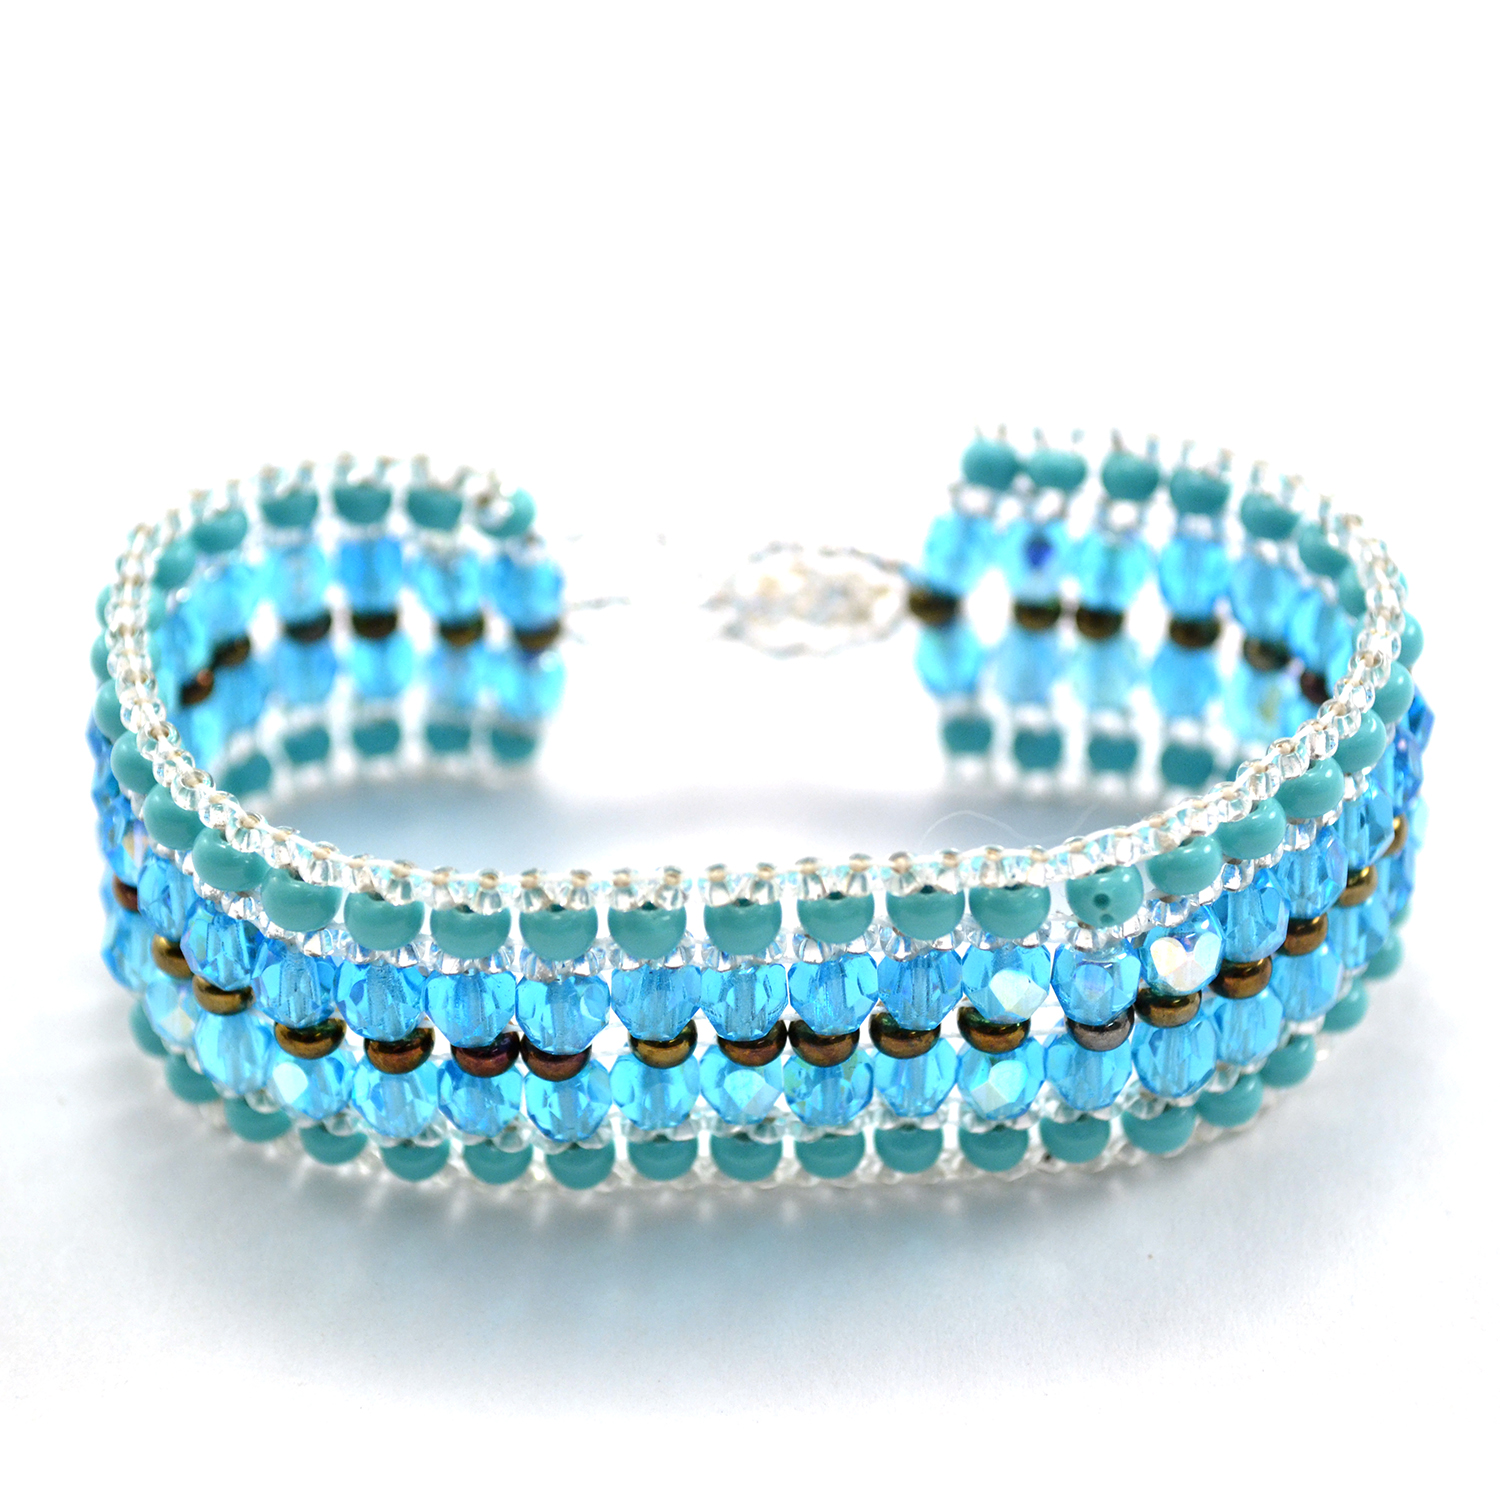 Handmade Guatemalan Fair Trade Stardust Bracelet in sky blue